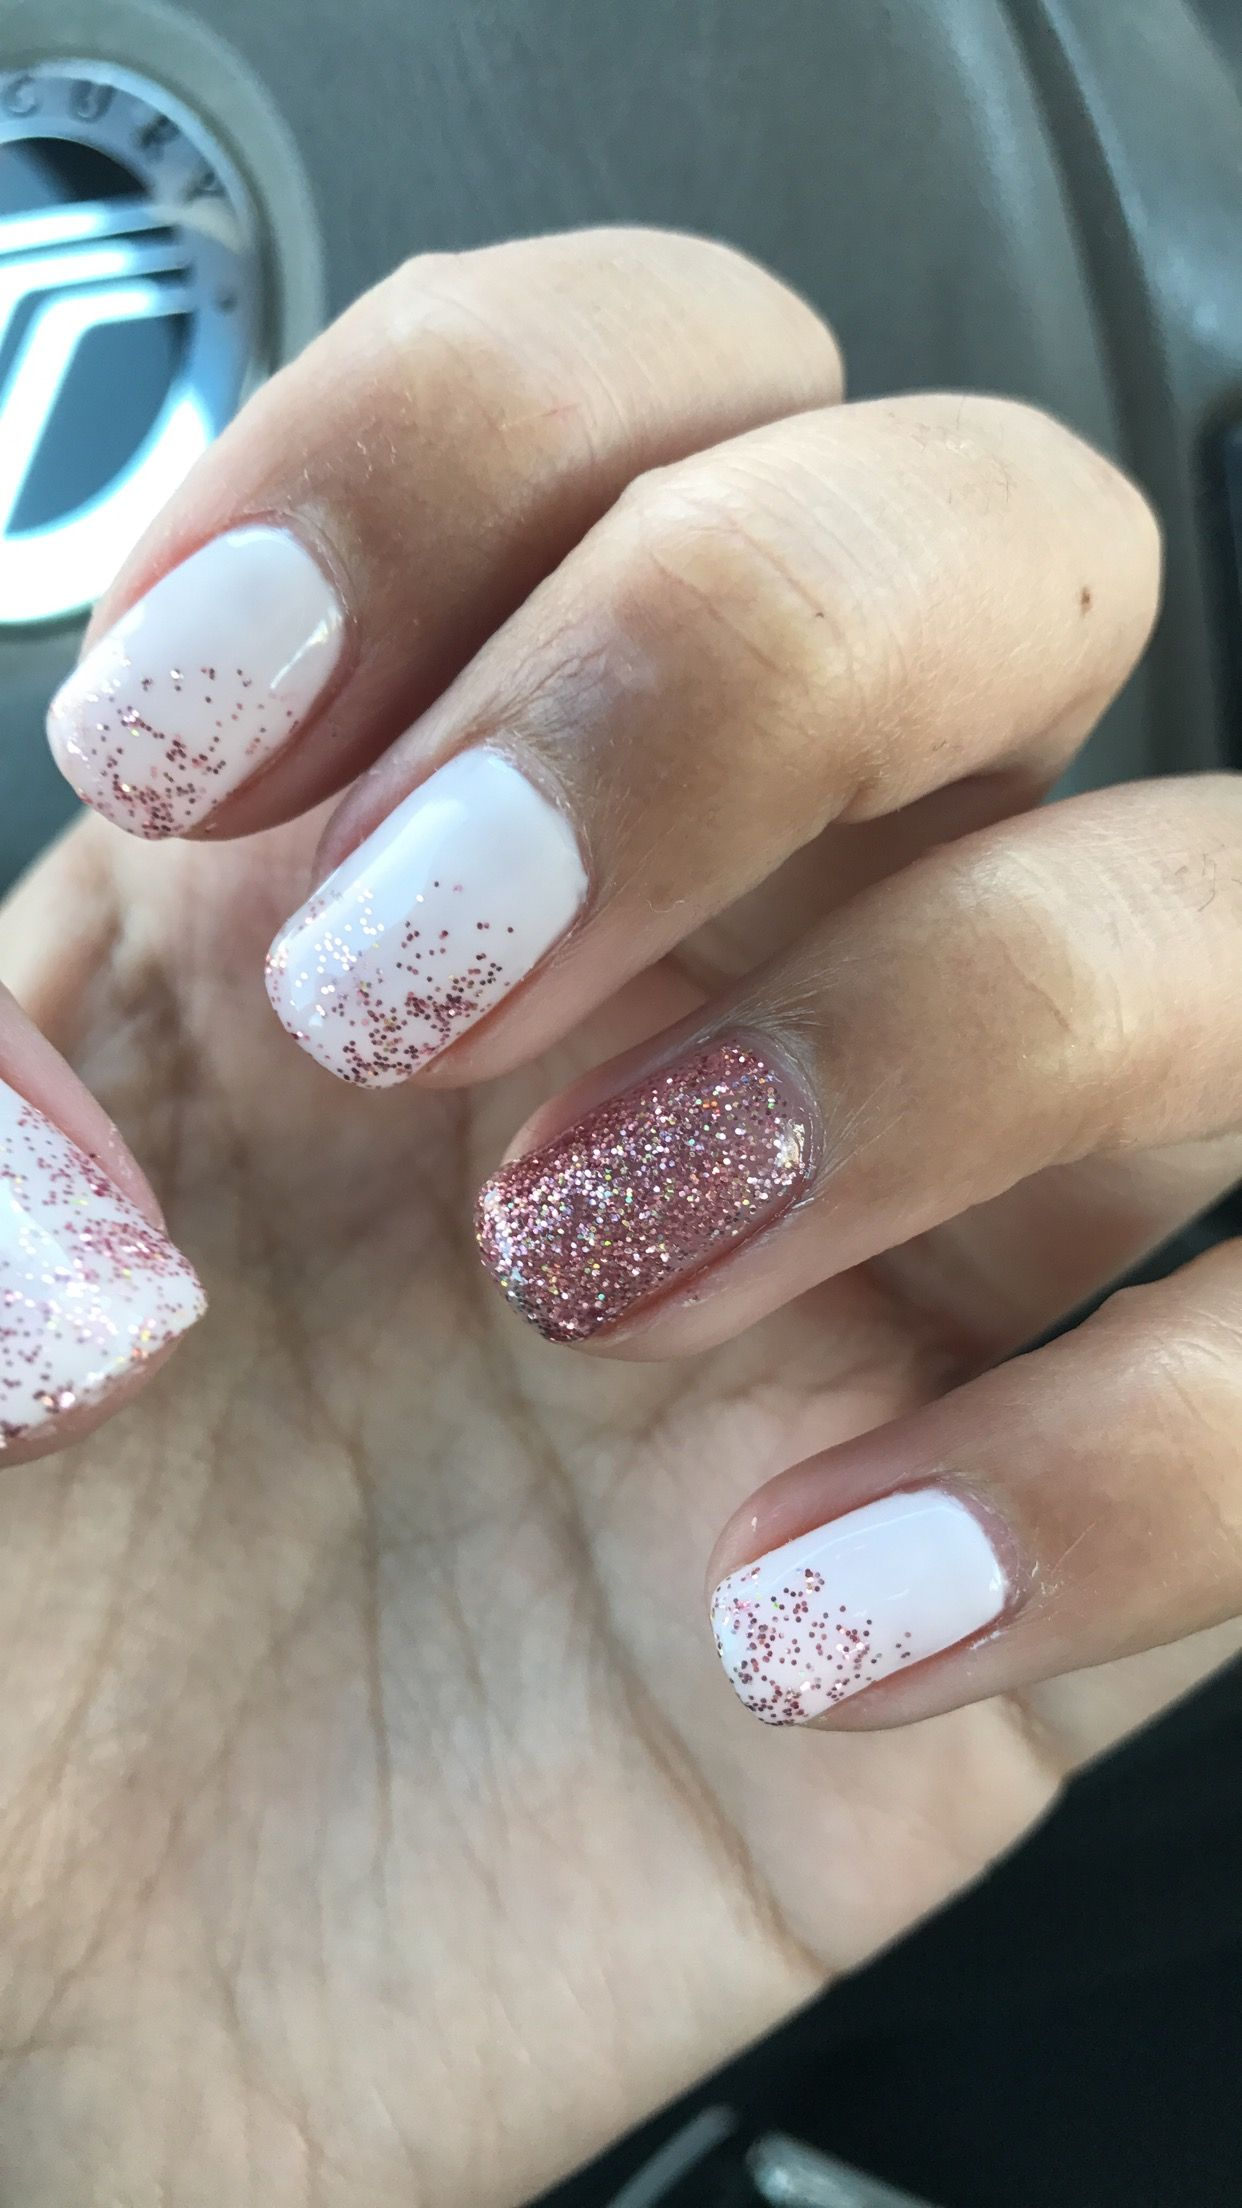 Cute Nails Pink Soft Pink Ombre Glitter Shellac Real Nails Nails All Glitter Cute Nails Pink Ombre Nails Ombre Nails Glitter